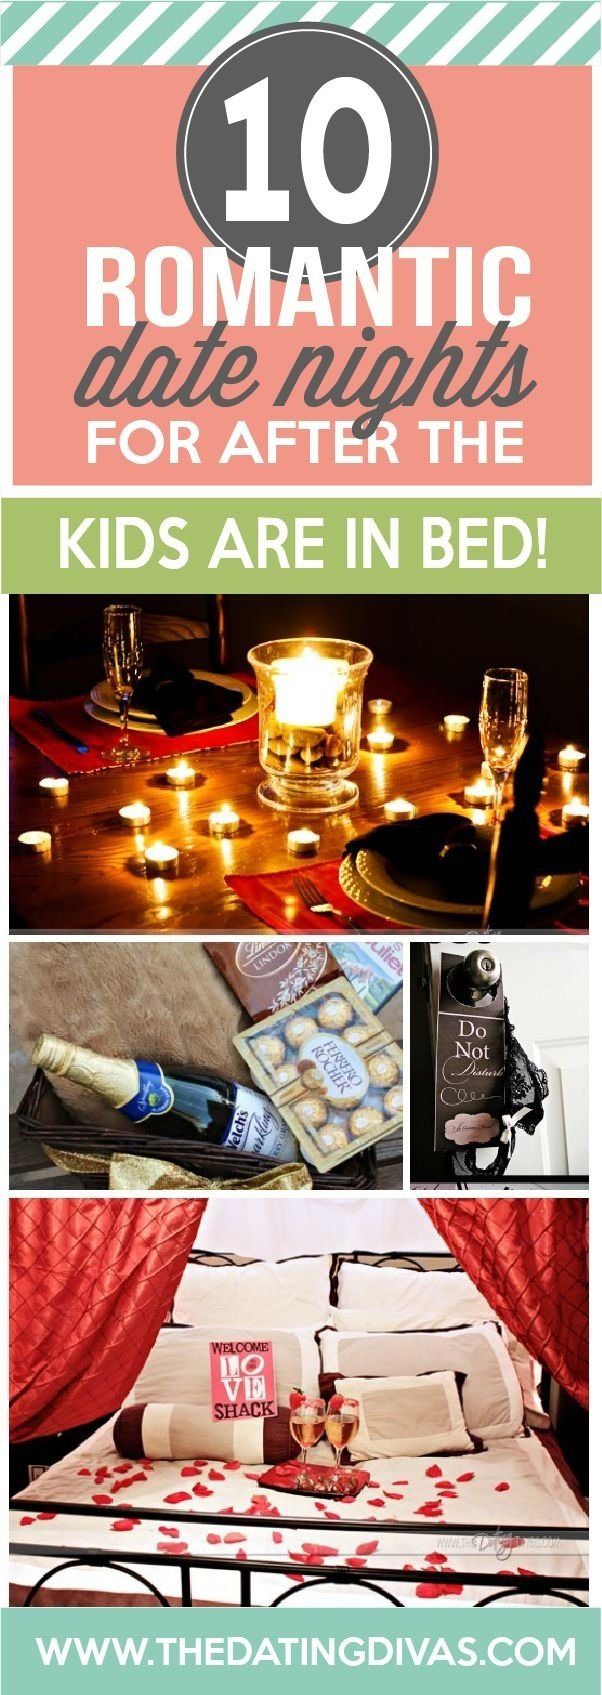 10 Ideal Ideas For Date Night With Wife 202 best date night ideas images on pinterest families happy wife 2020